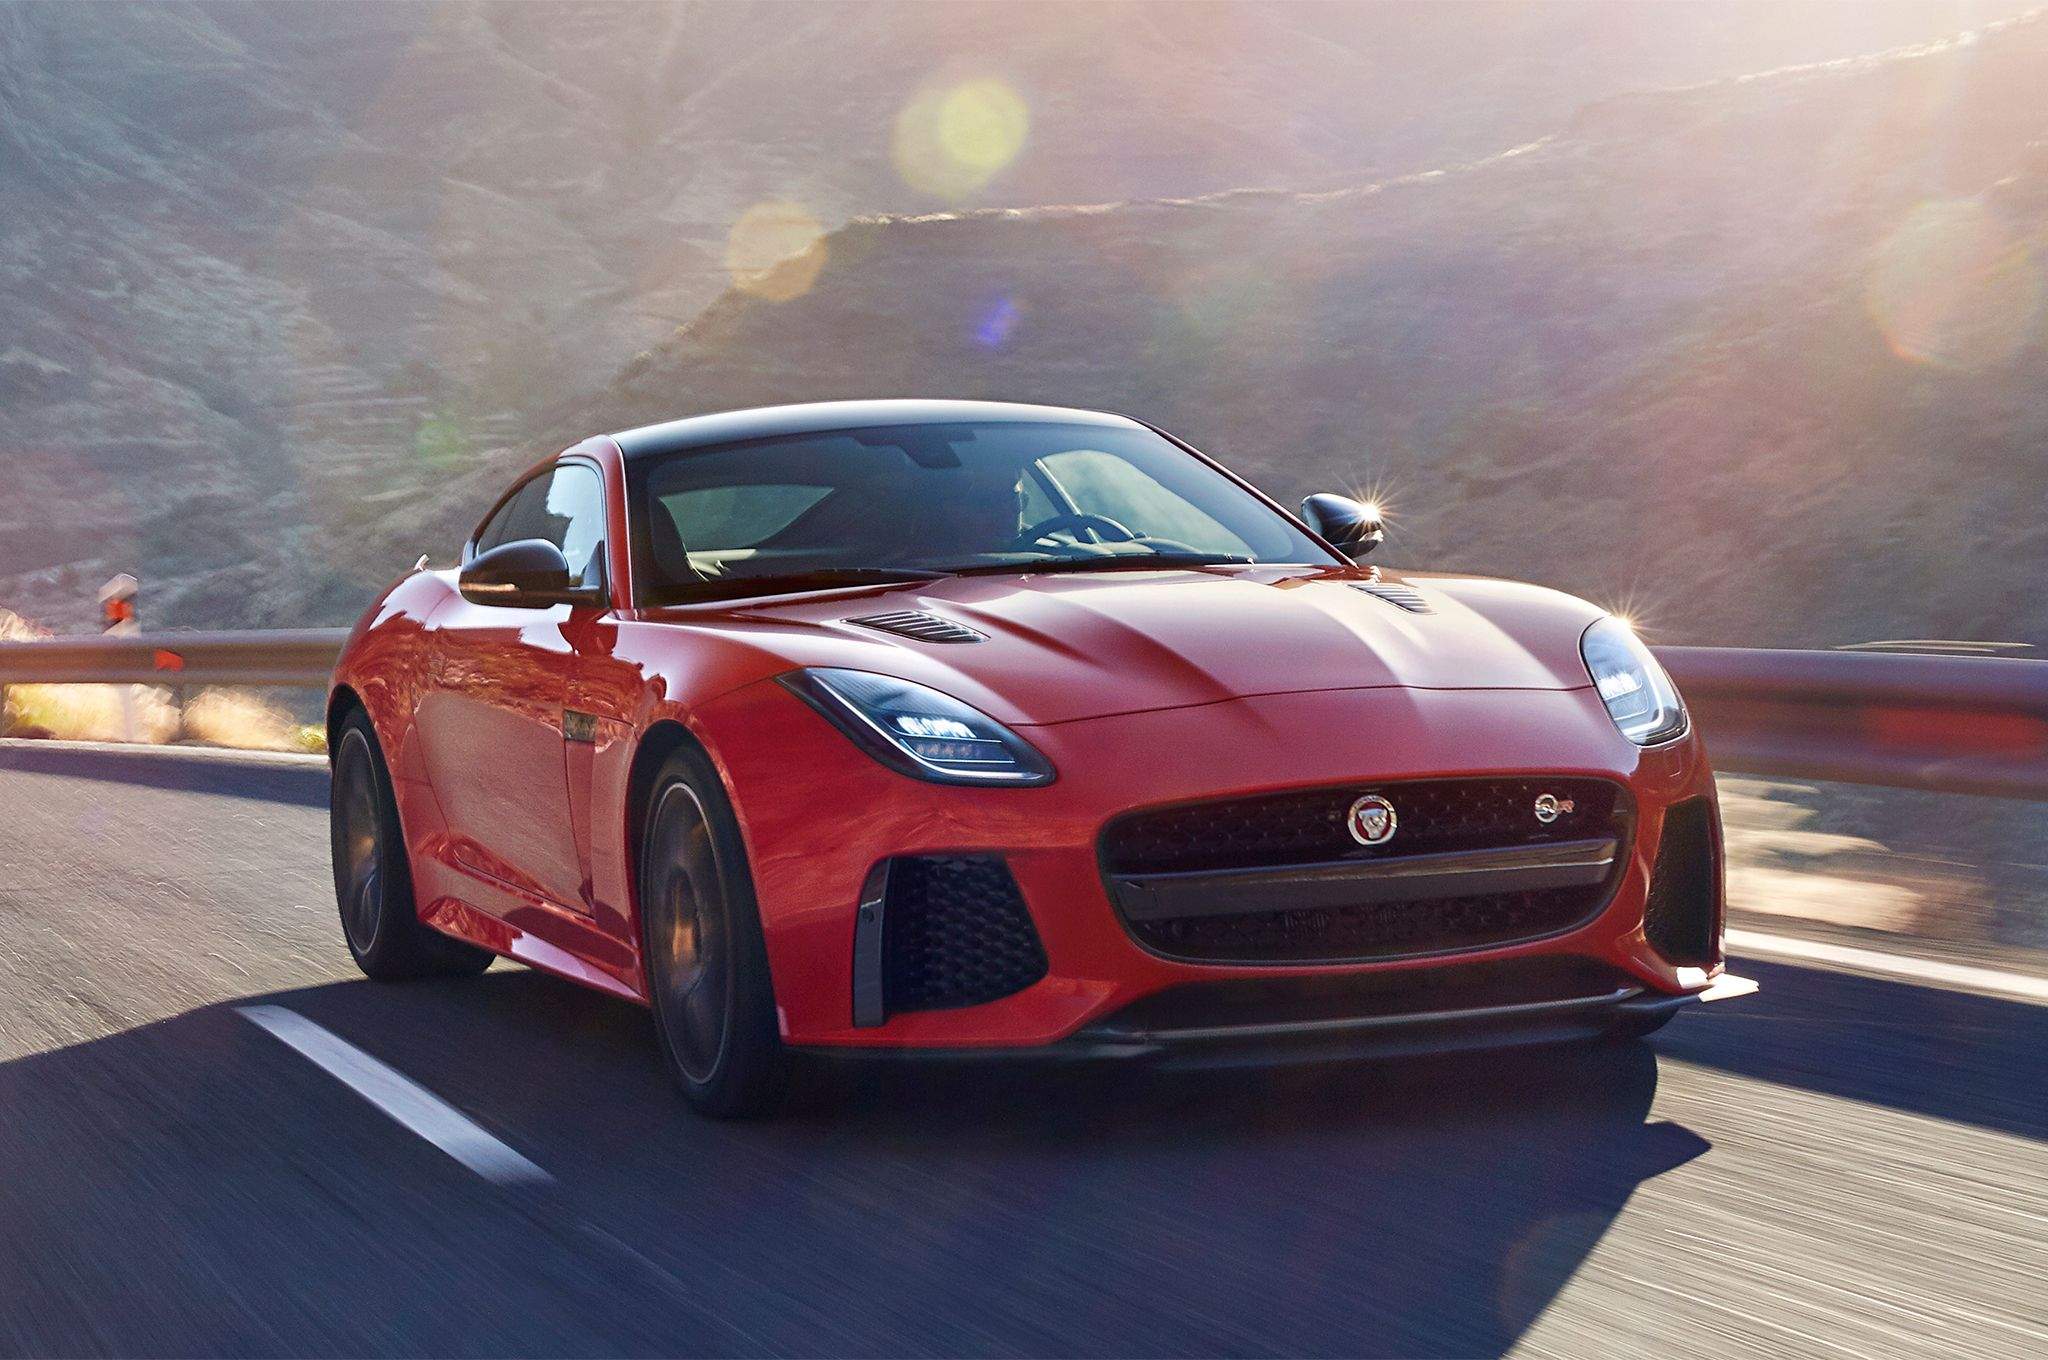 2018 Jaguar F Type Adds New Trims Gopro Integration Jaguar F Type Jaguar Car Jaguar